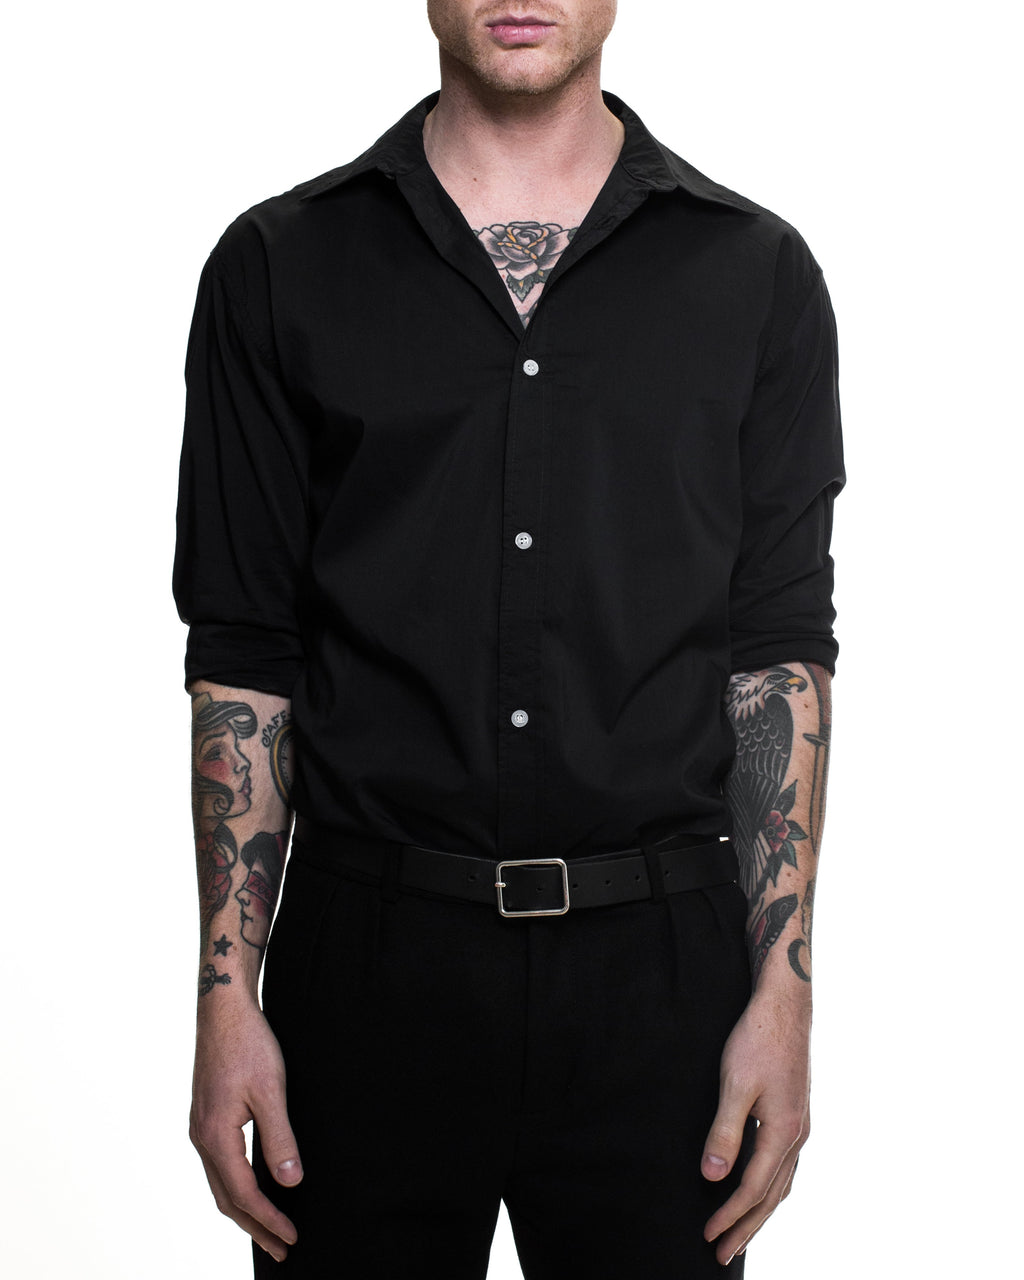 Curtis Long-Sleeve Shirt - Black